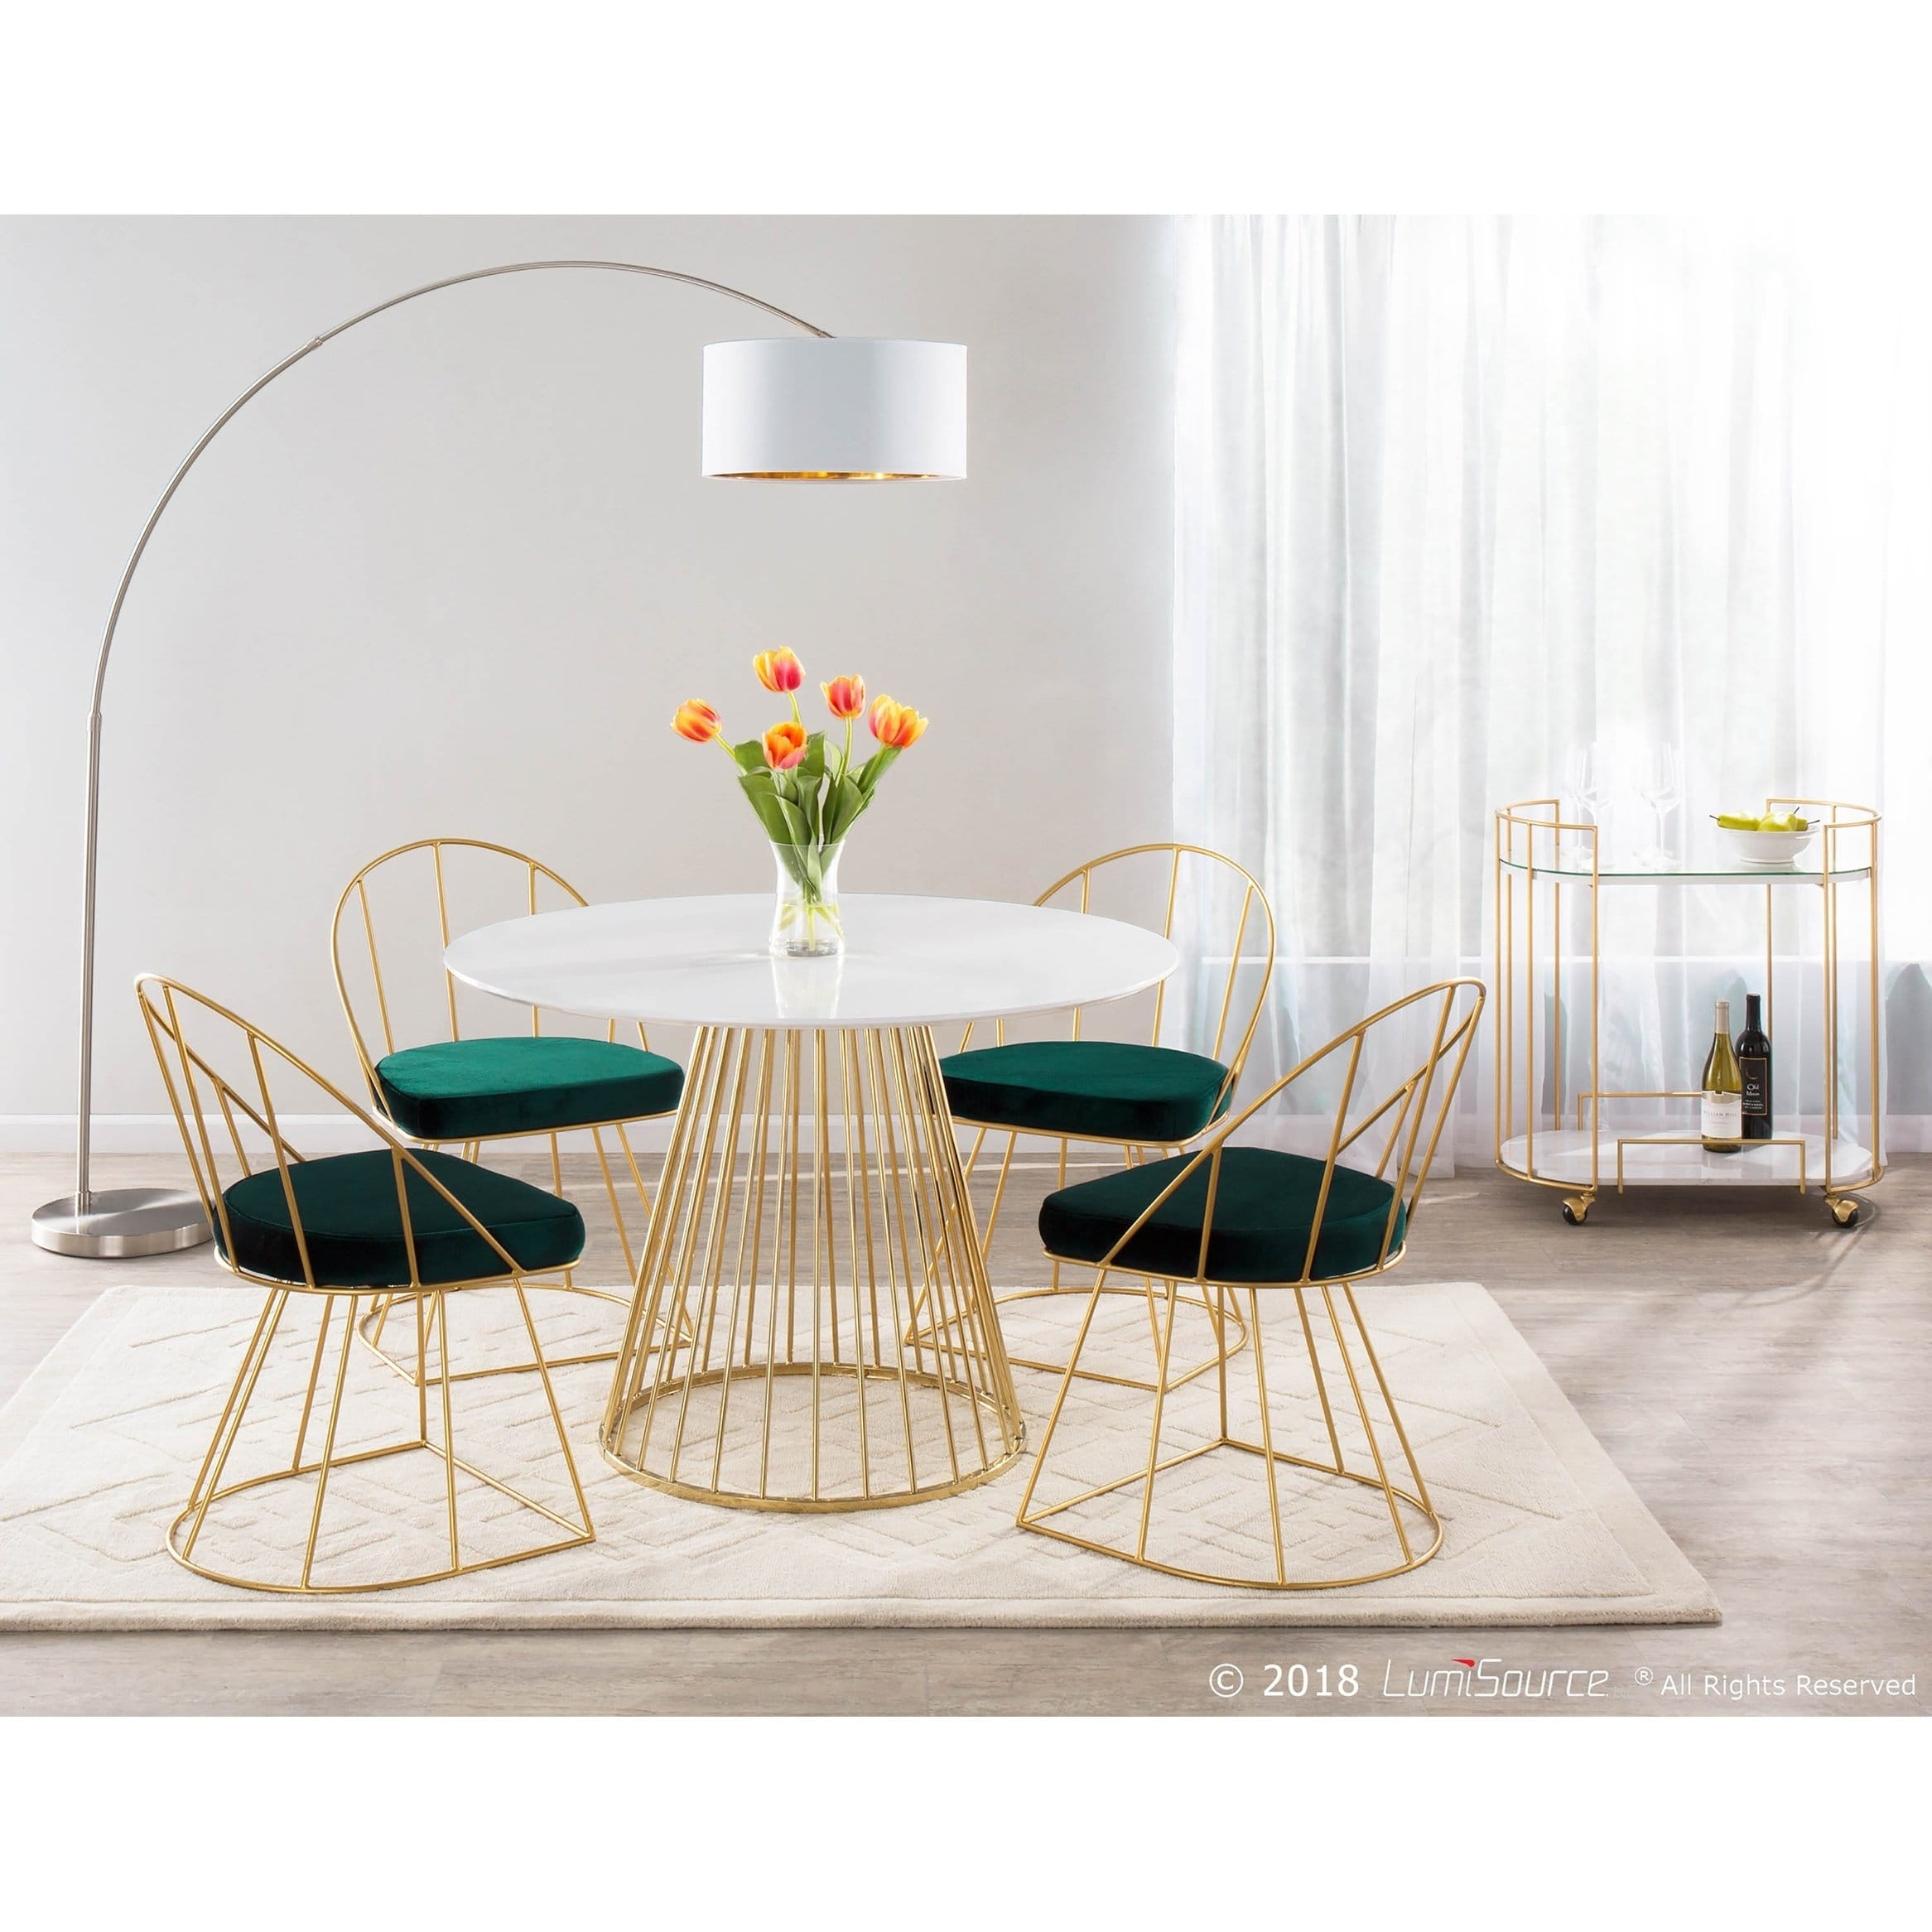 canary contemporary glam dining accent chair gold metal set table free shipping today black antique ikea book shelves mirimyn round hammered coffee patio cordless lamps leather